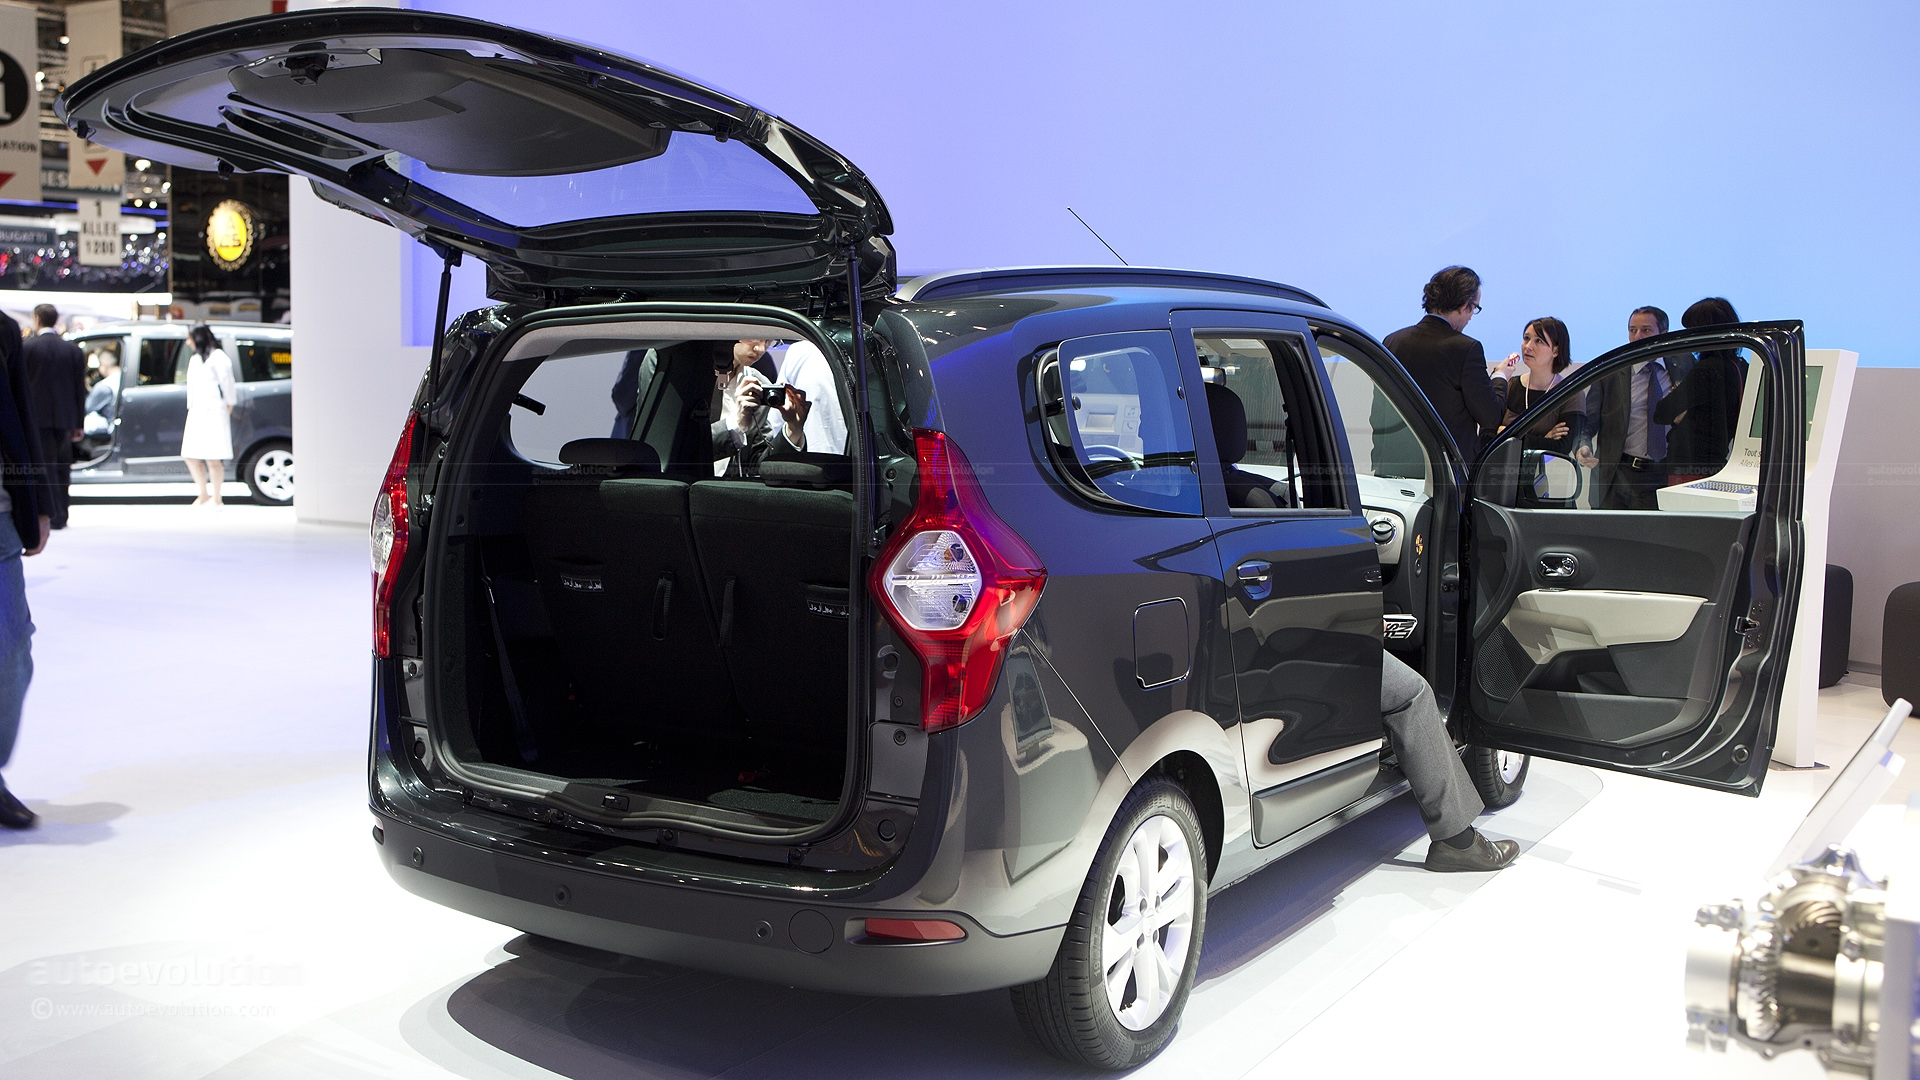 Most Expensive Car Seat >> Dacia Lodgy image #2